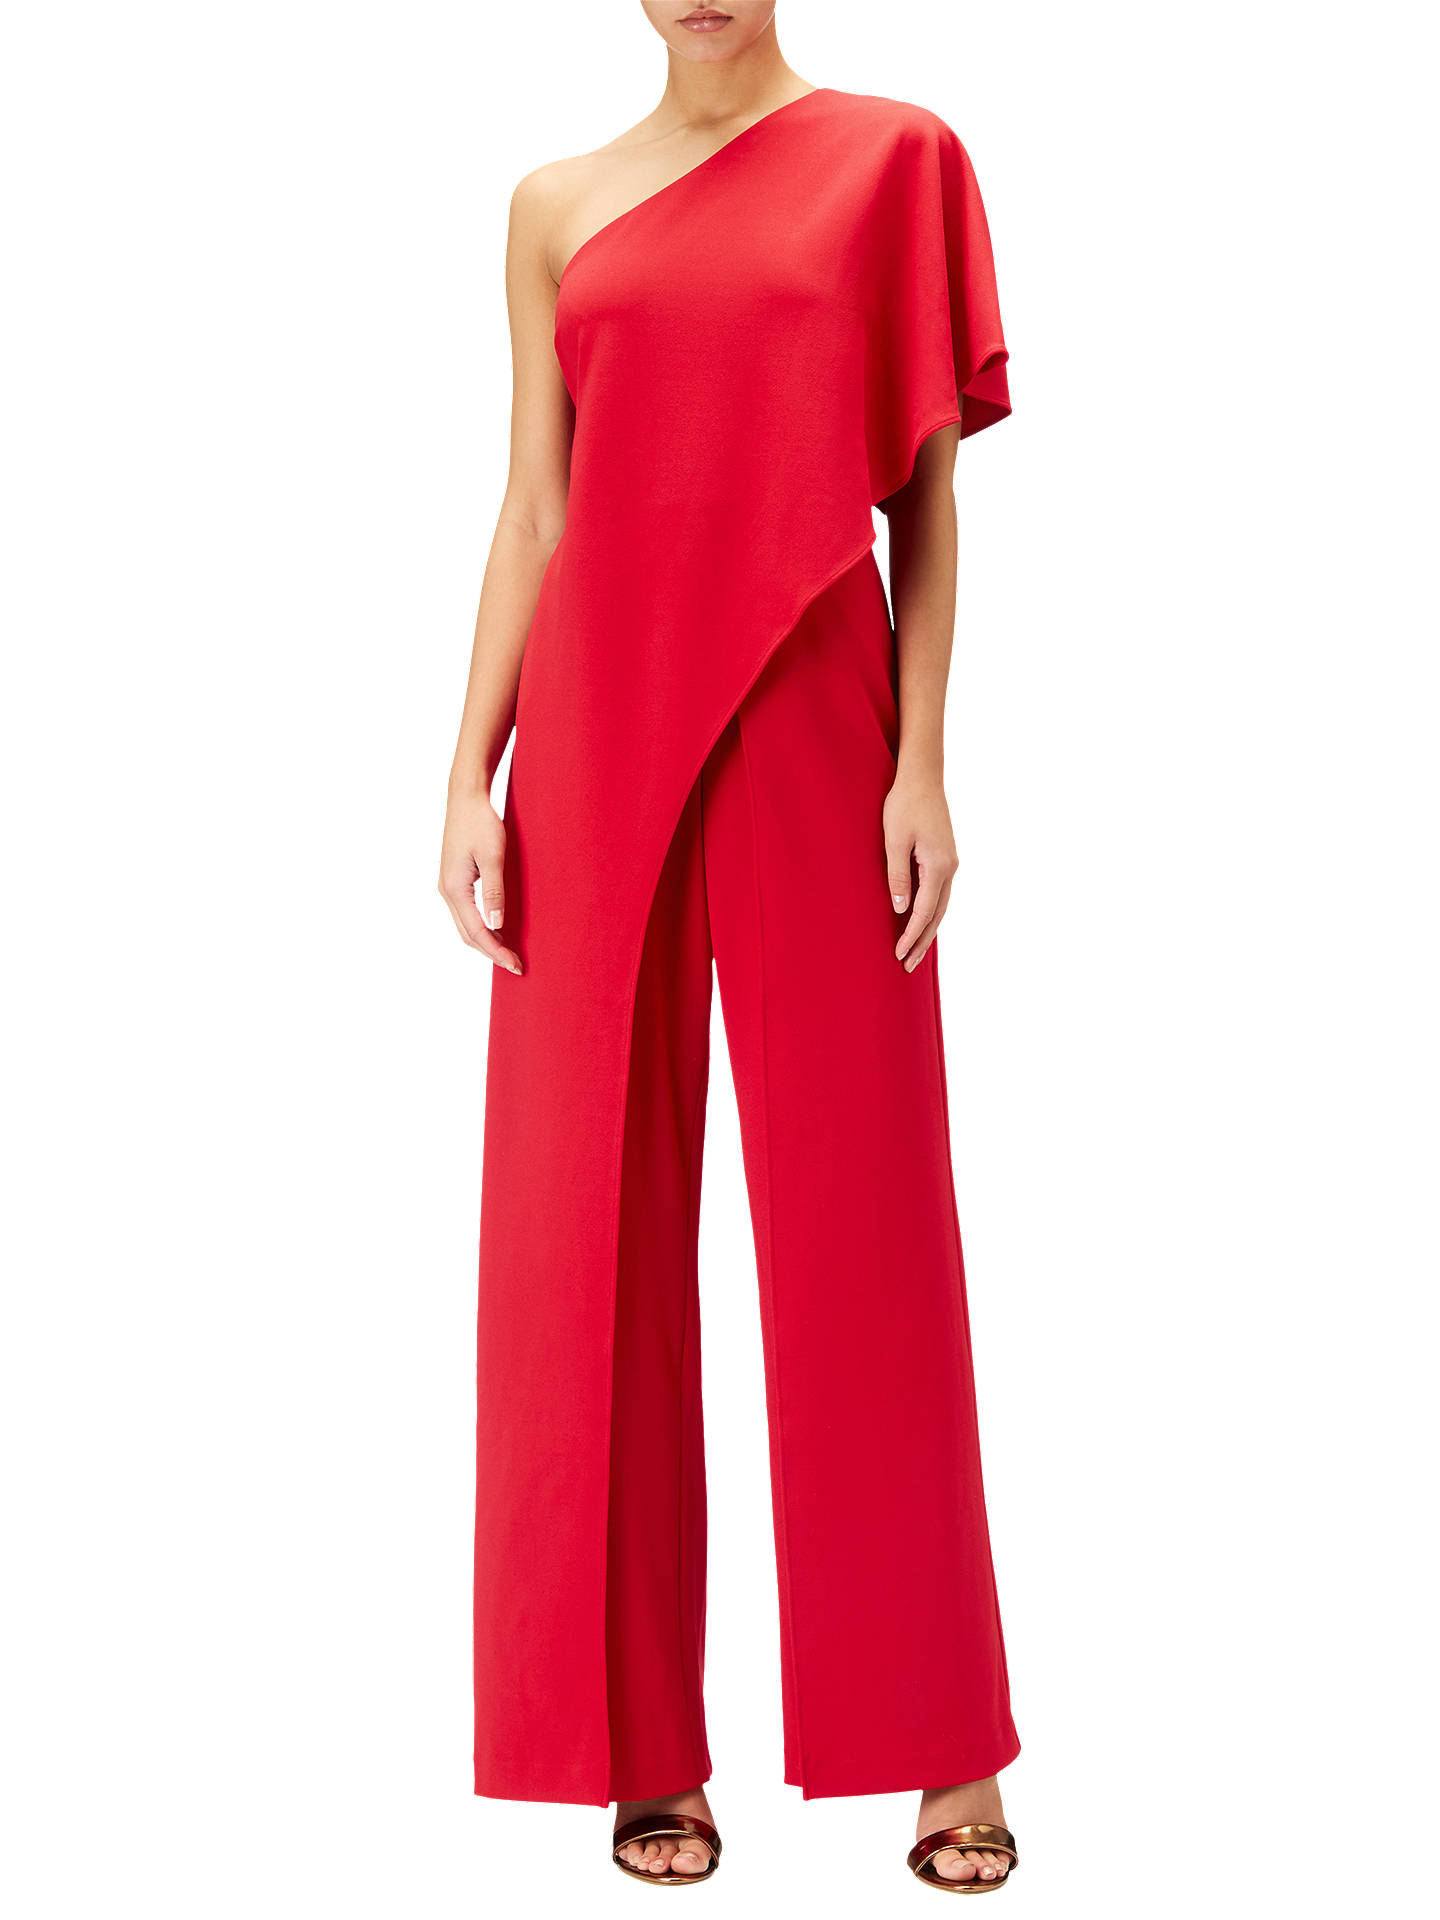 cfa60f774260 ... Buy Adrianna Papell Flutter One Shoulder Jumpsuit